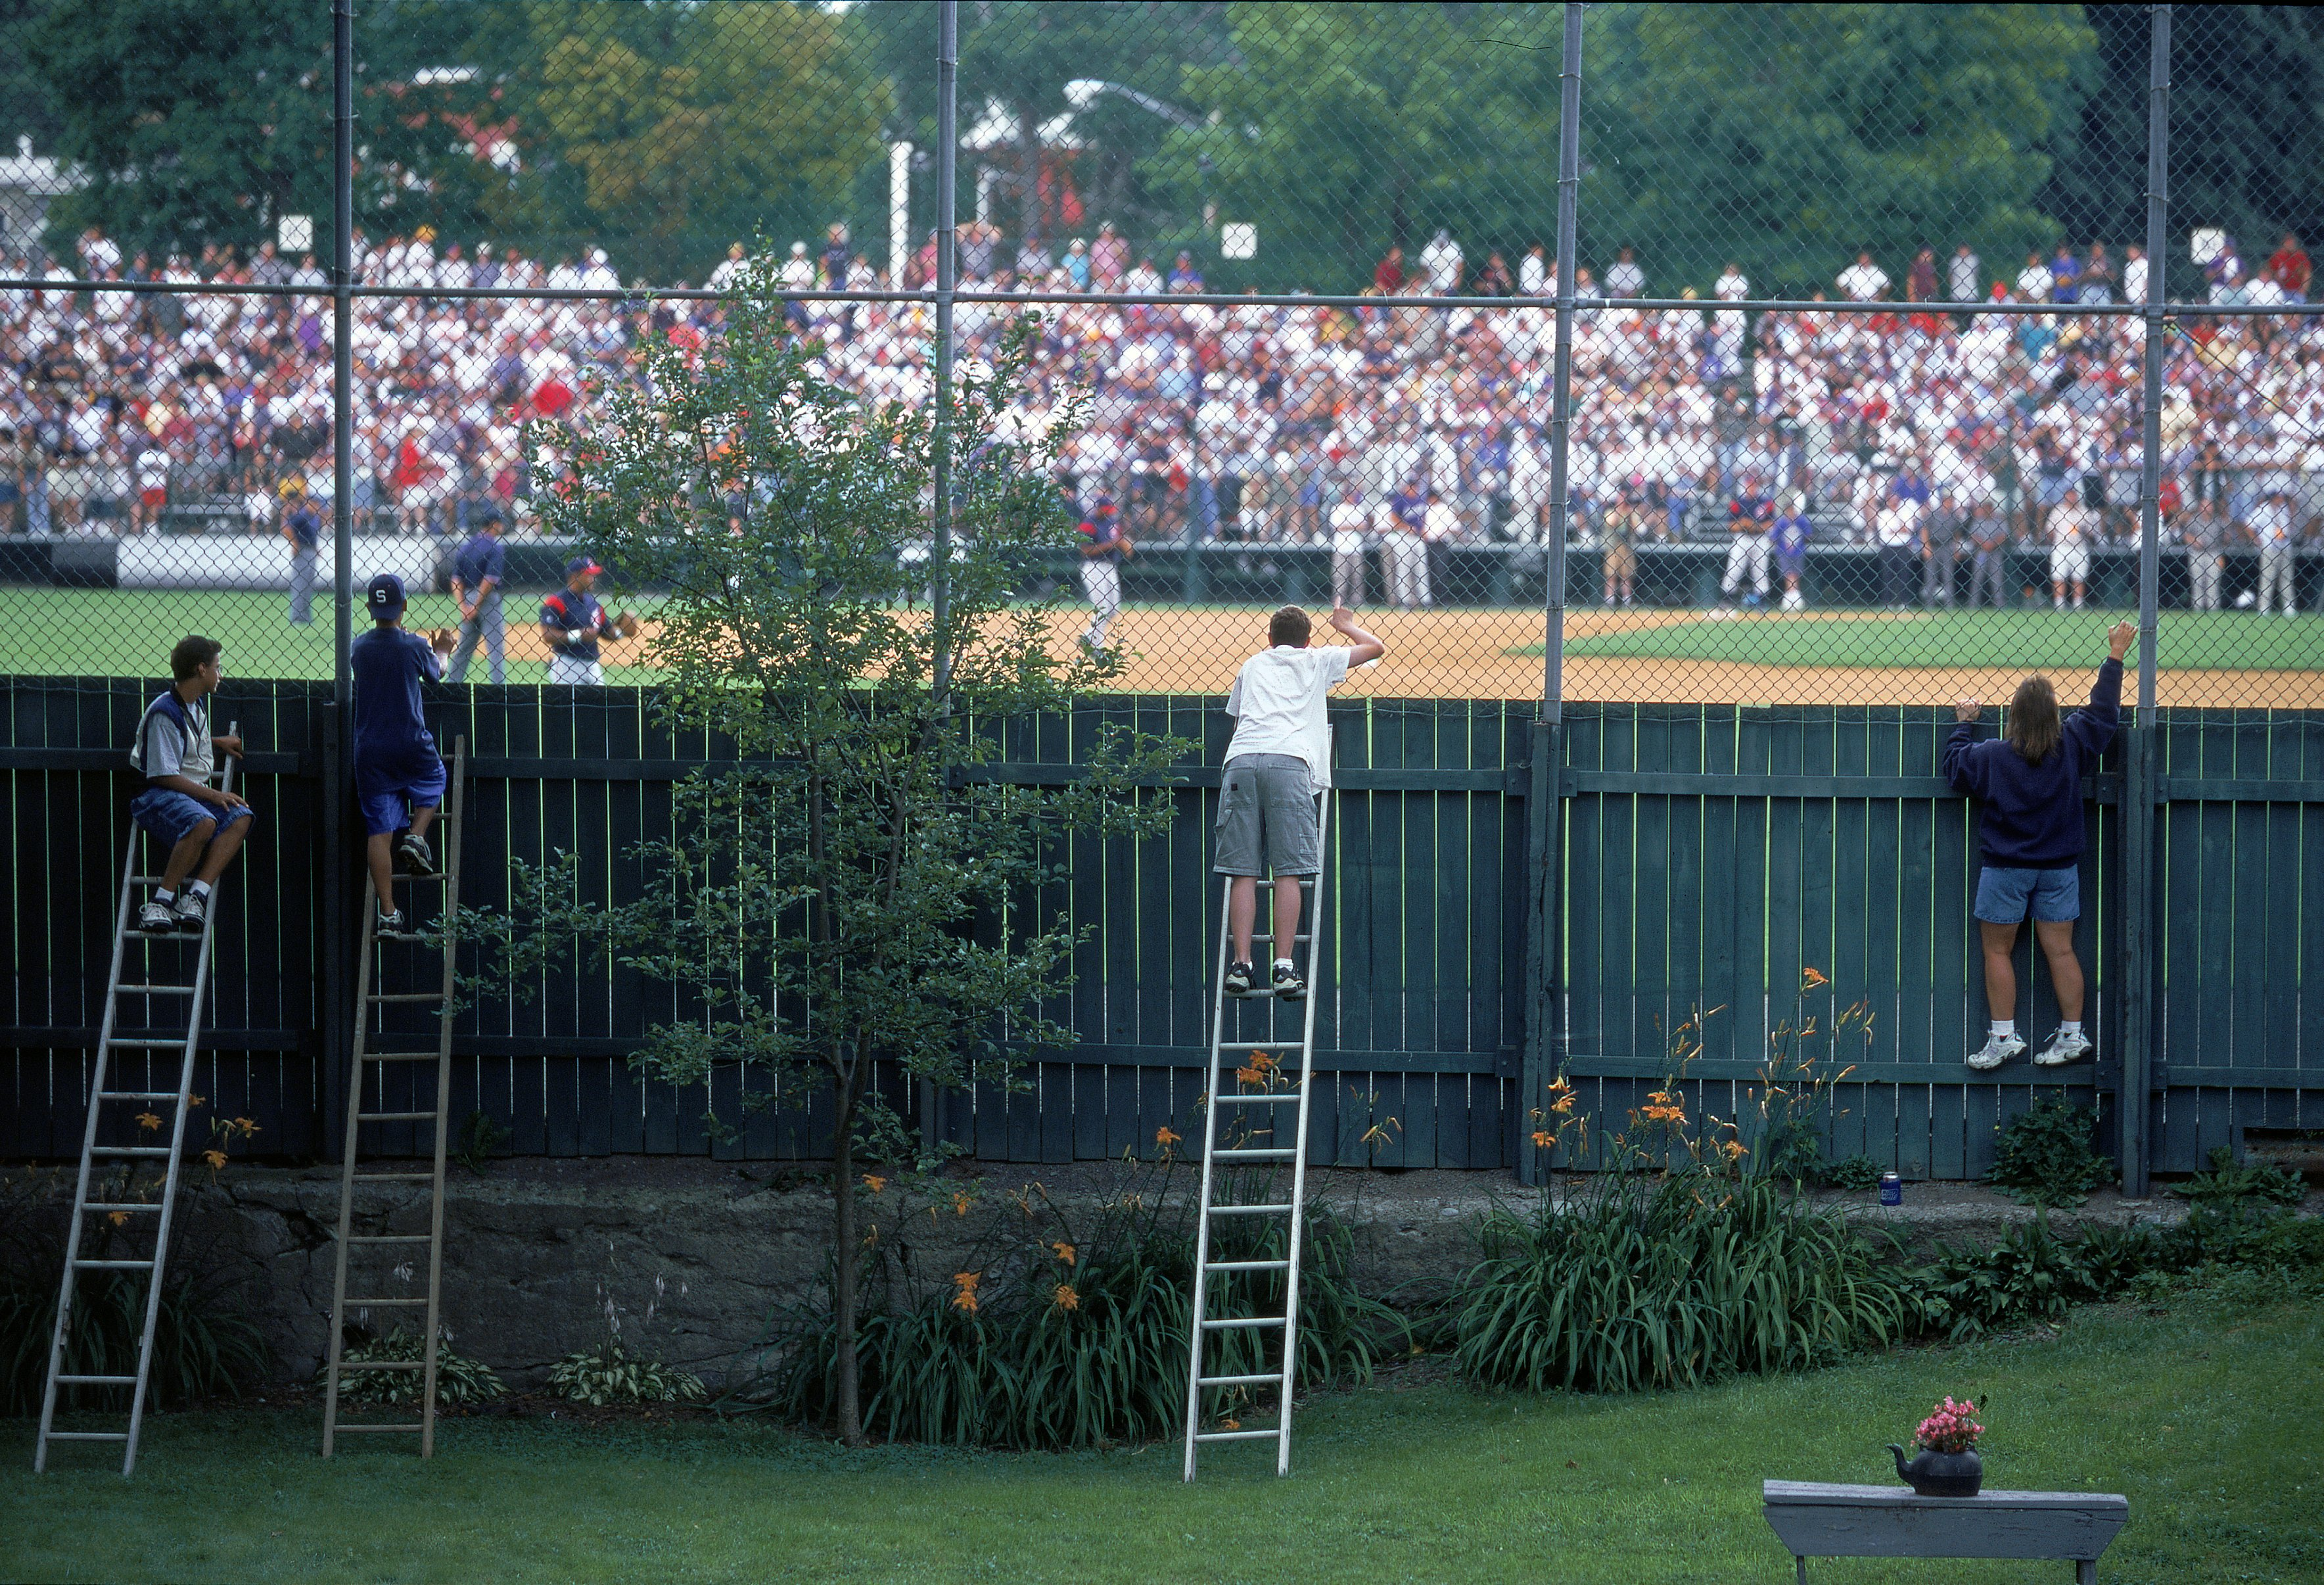 Fans Standing on Ladders